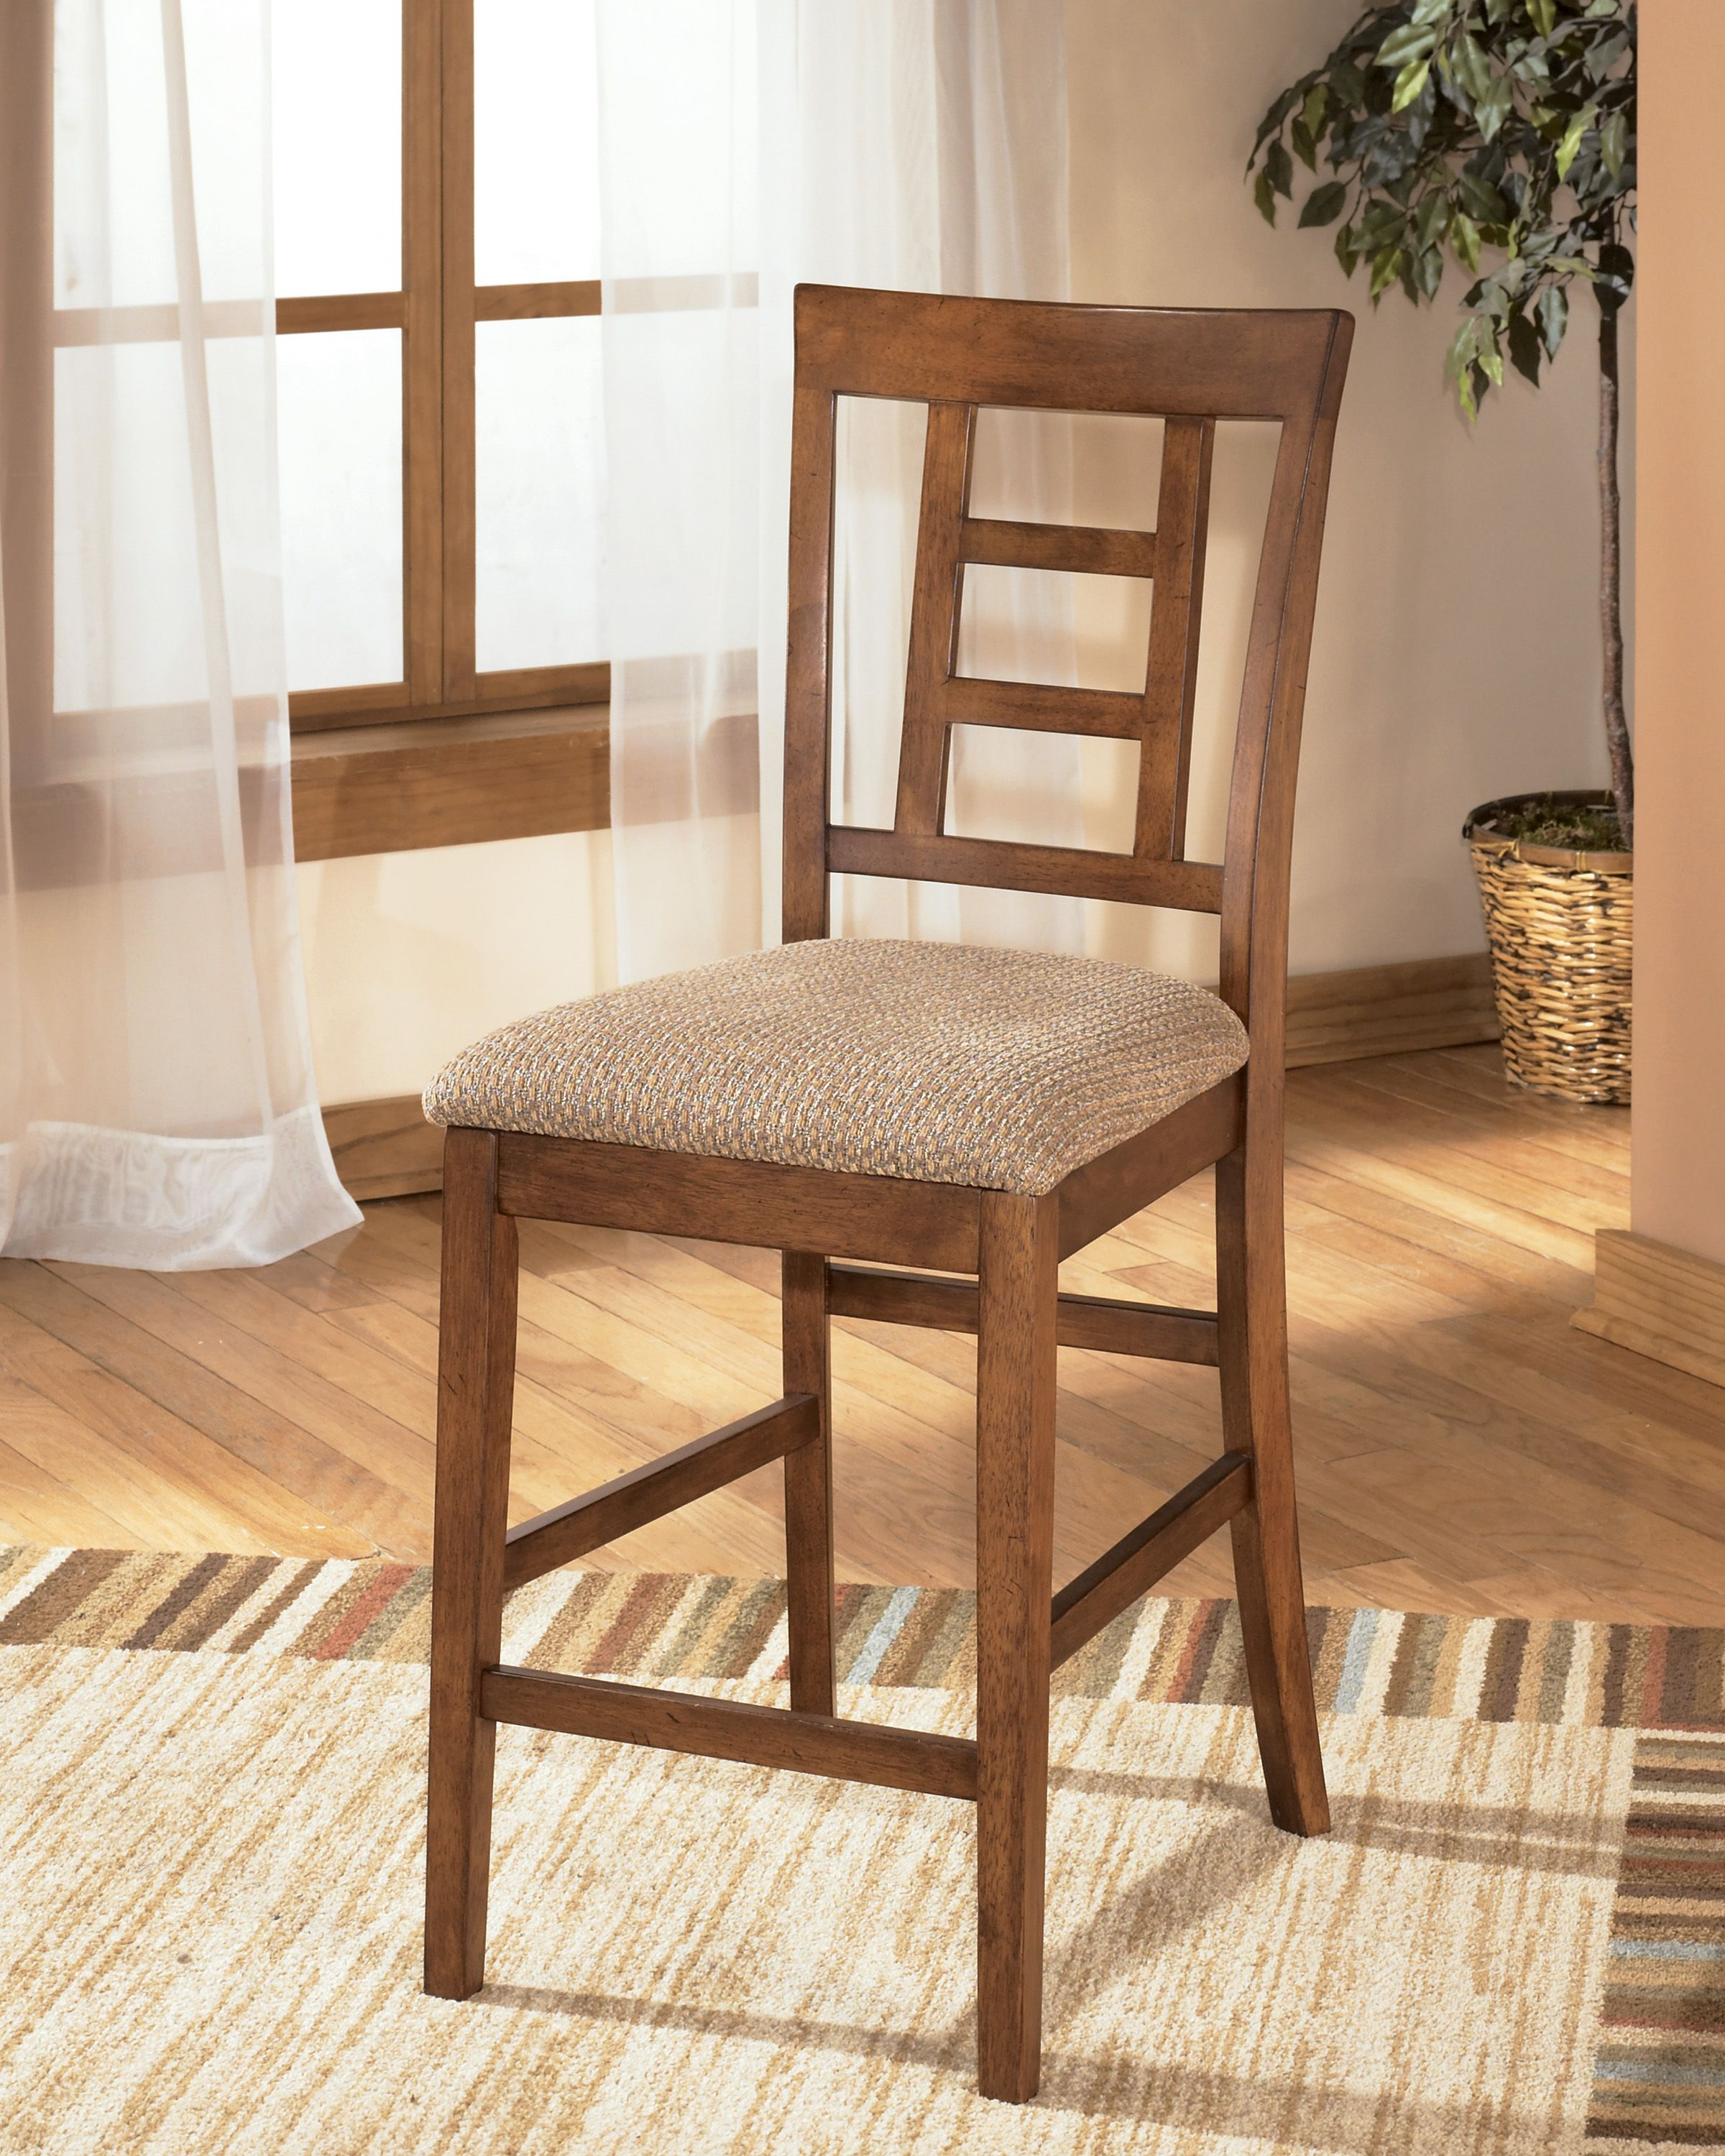 Cross Island Upholstered Barstool Shopac Dining Home Bar Furniture Mission Style Furniture Upholstered Bar Stools